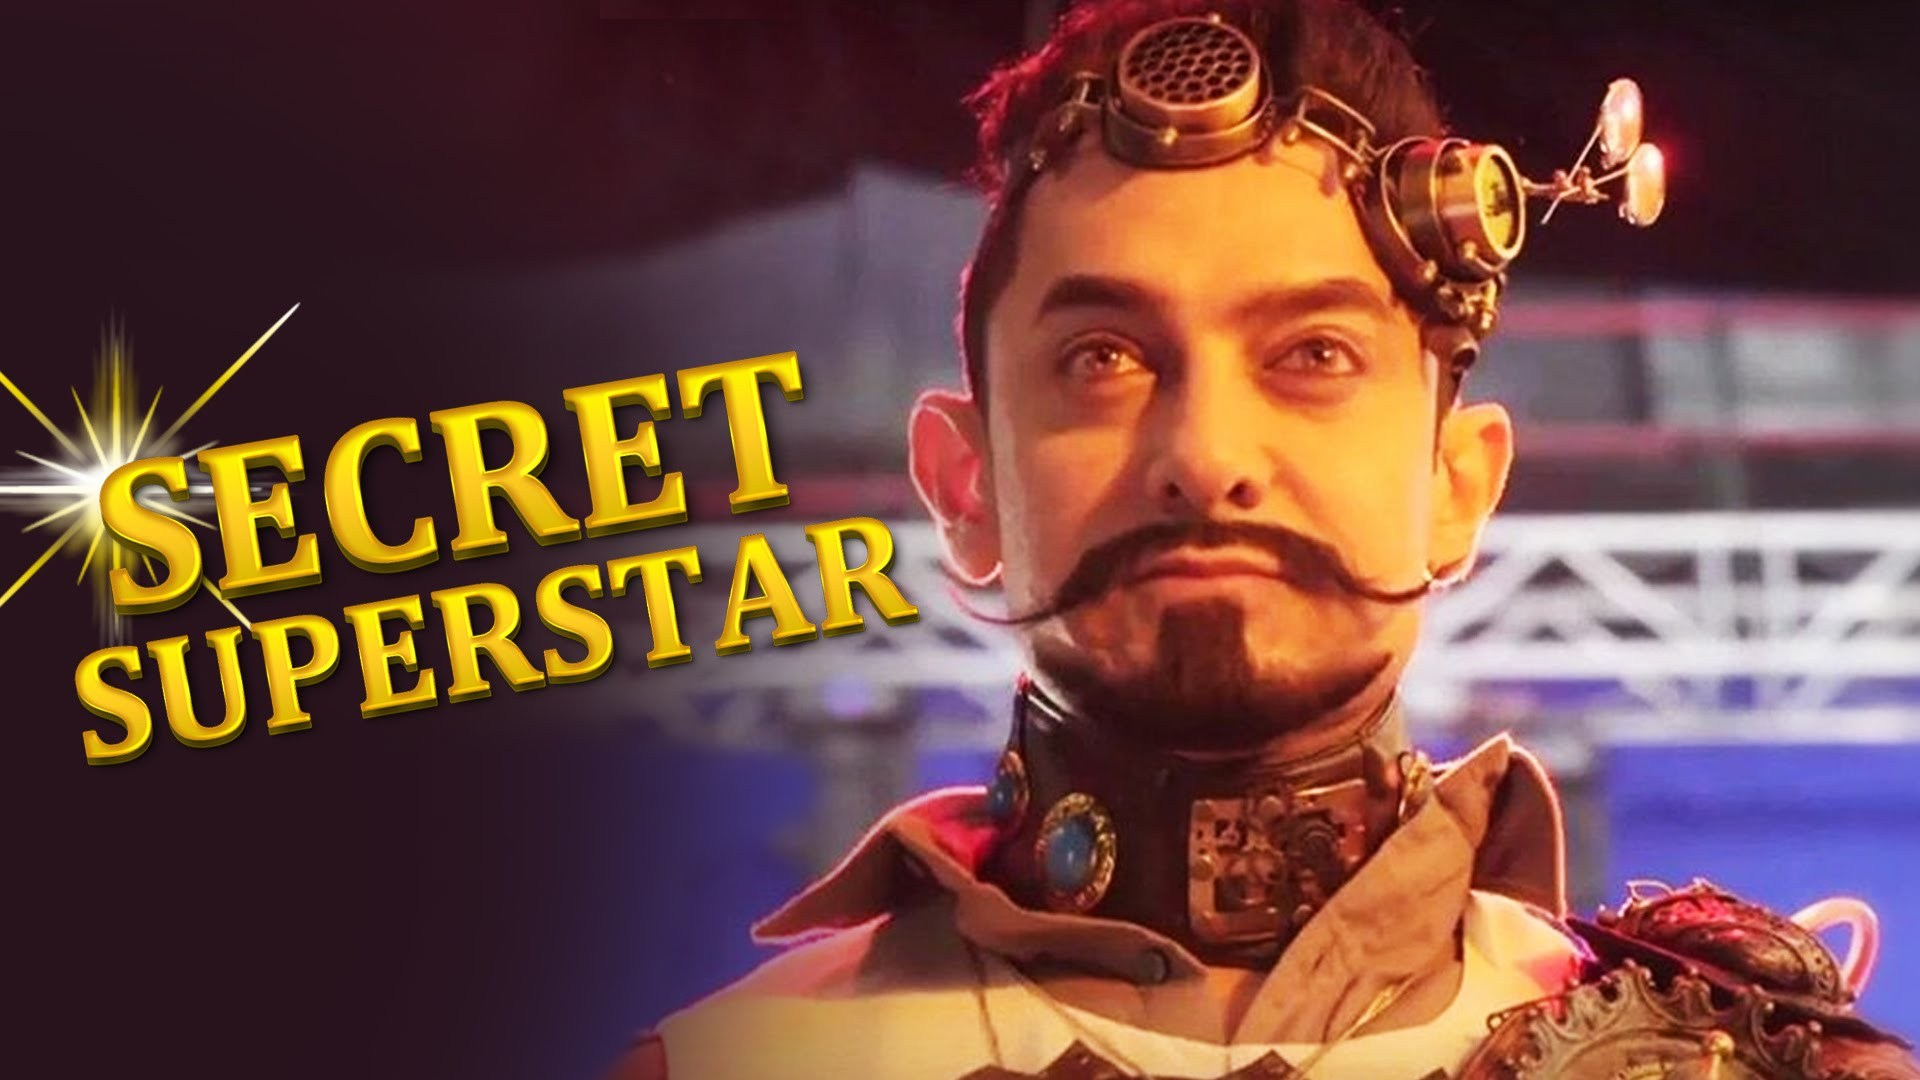 Secret Superstar Hindi Movie Torrent 2017 download